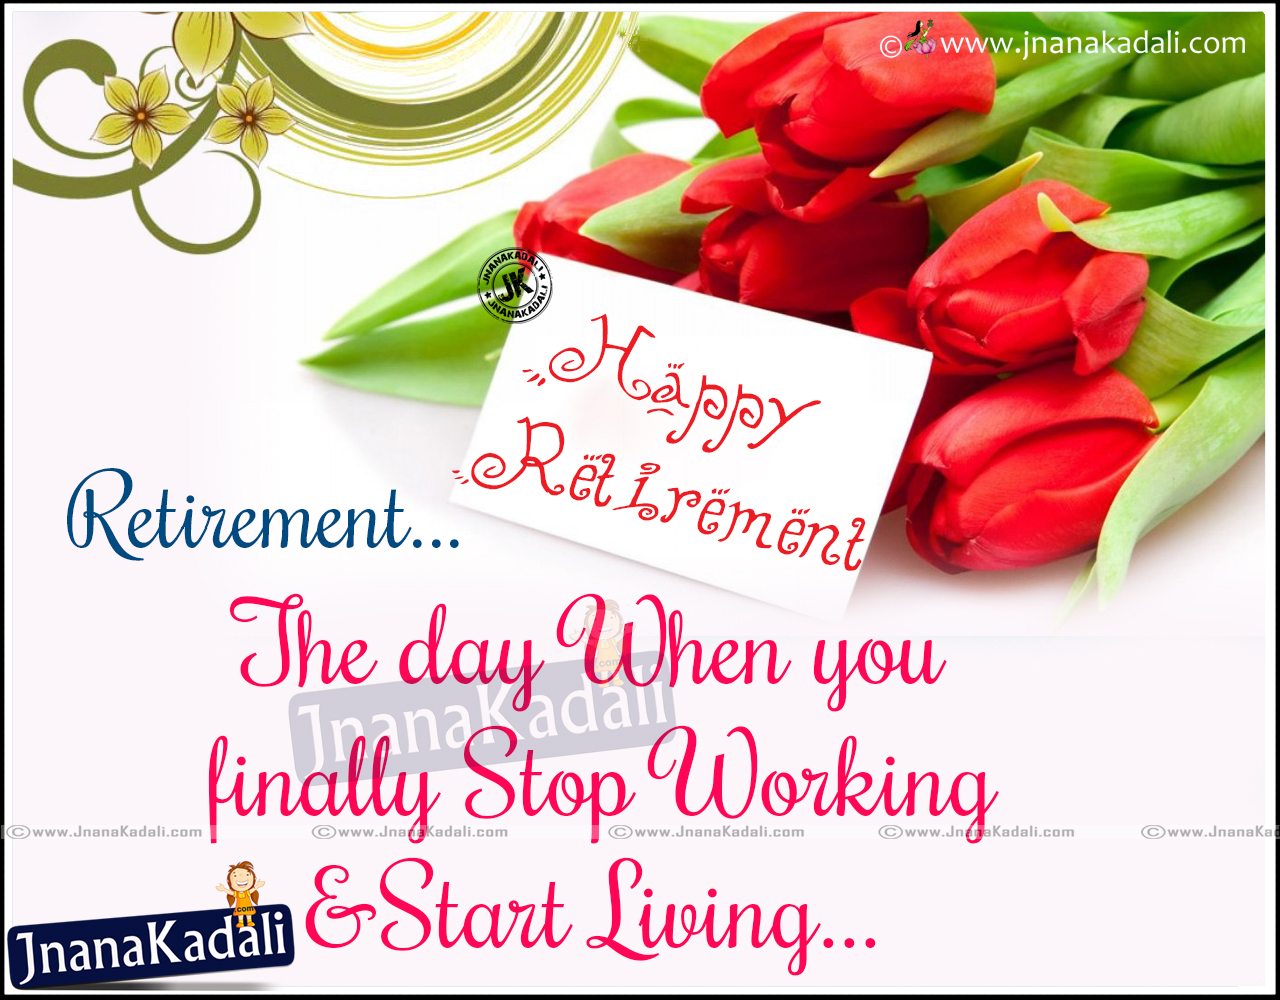 Happy Retirement Telugu Quotes & Greetings Wishes SMS